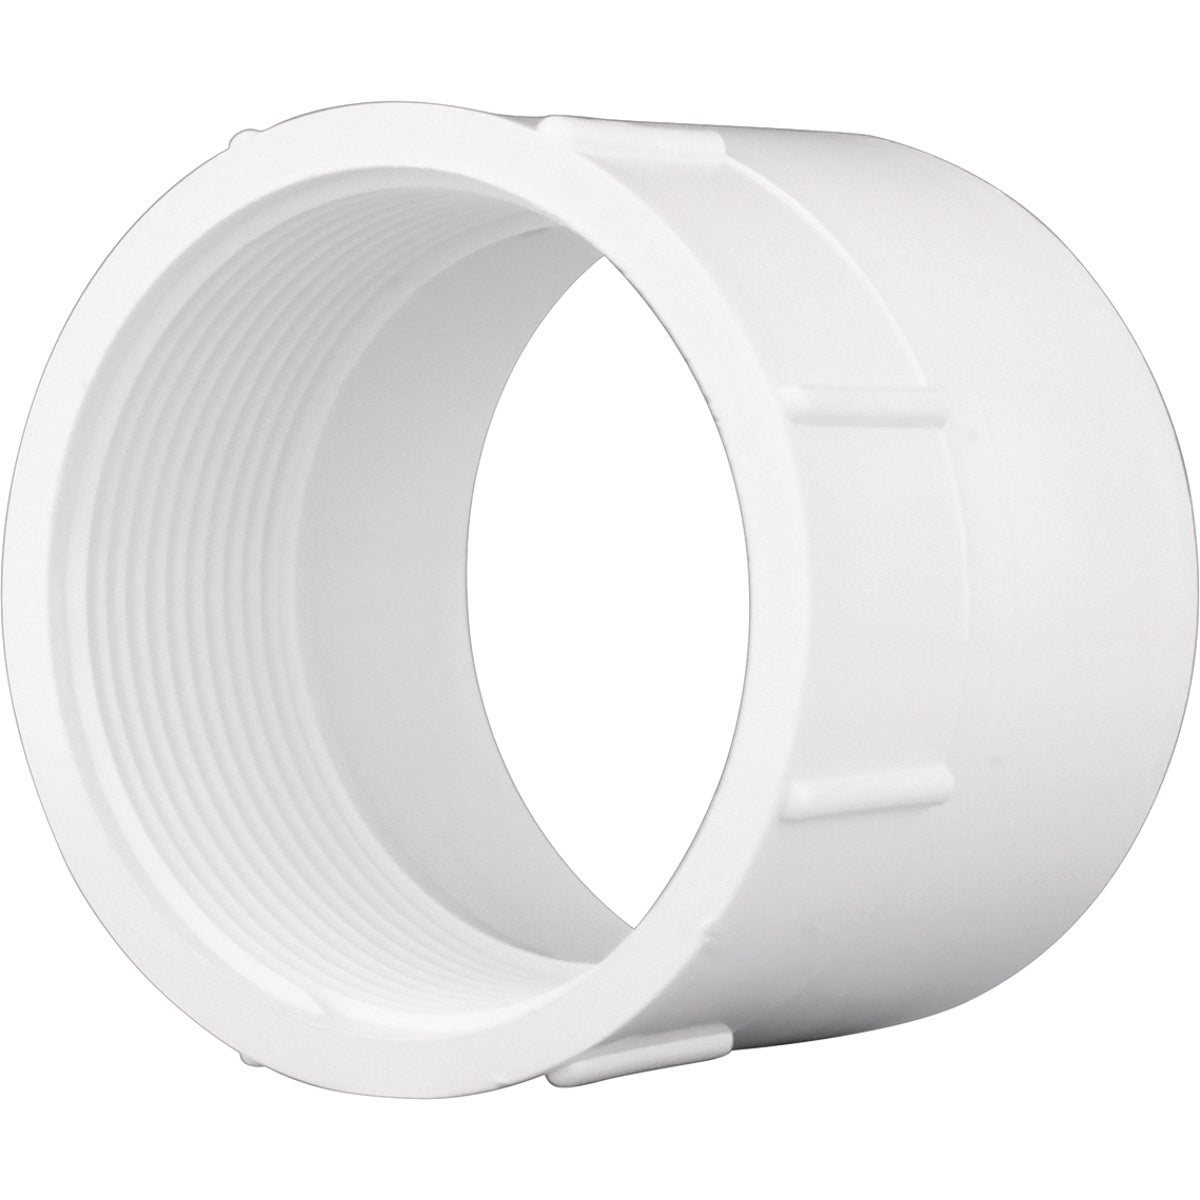 "6"" PVC-DWV FEM ADAPTER - 70360 by Genova Inc  Pvc Dwv"